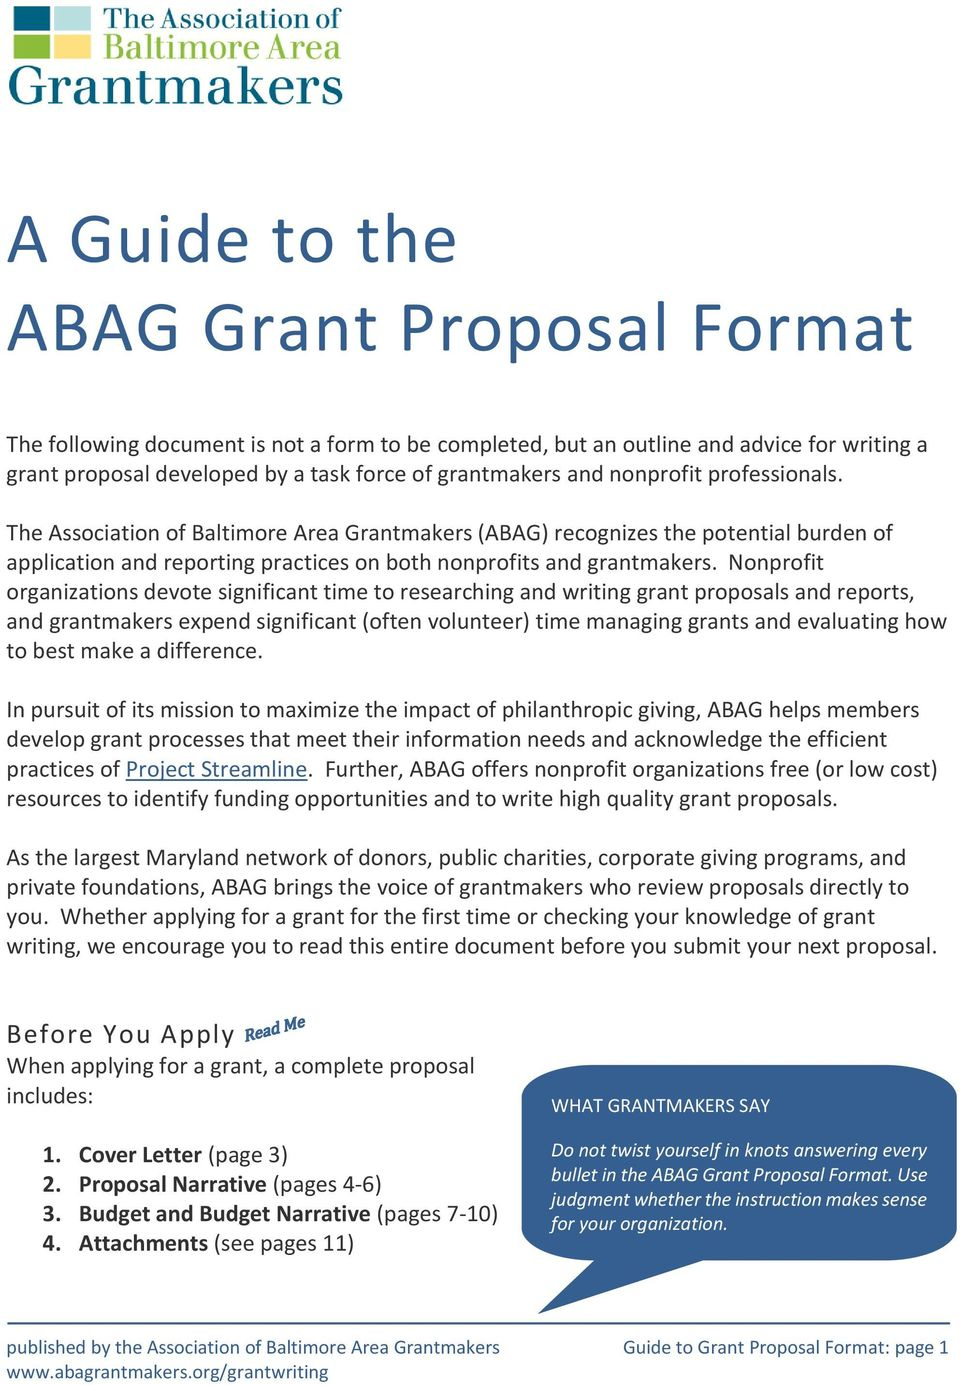 A Guide to the ABAG Grant Proposal Format - PDF